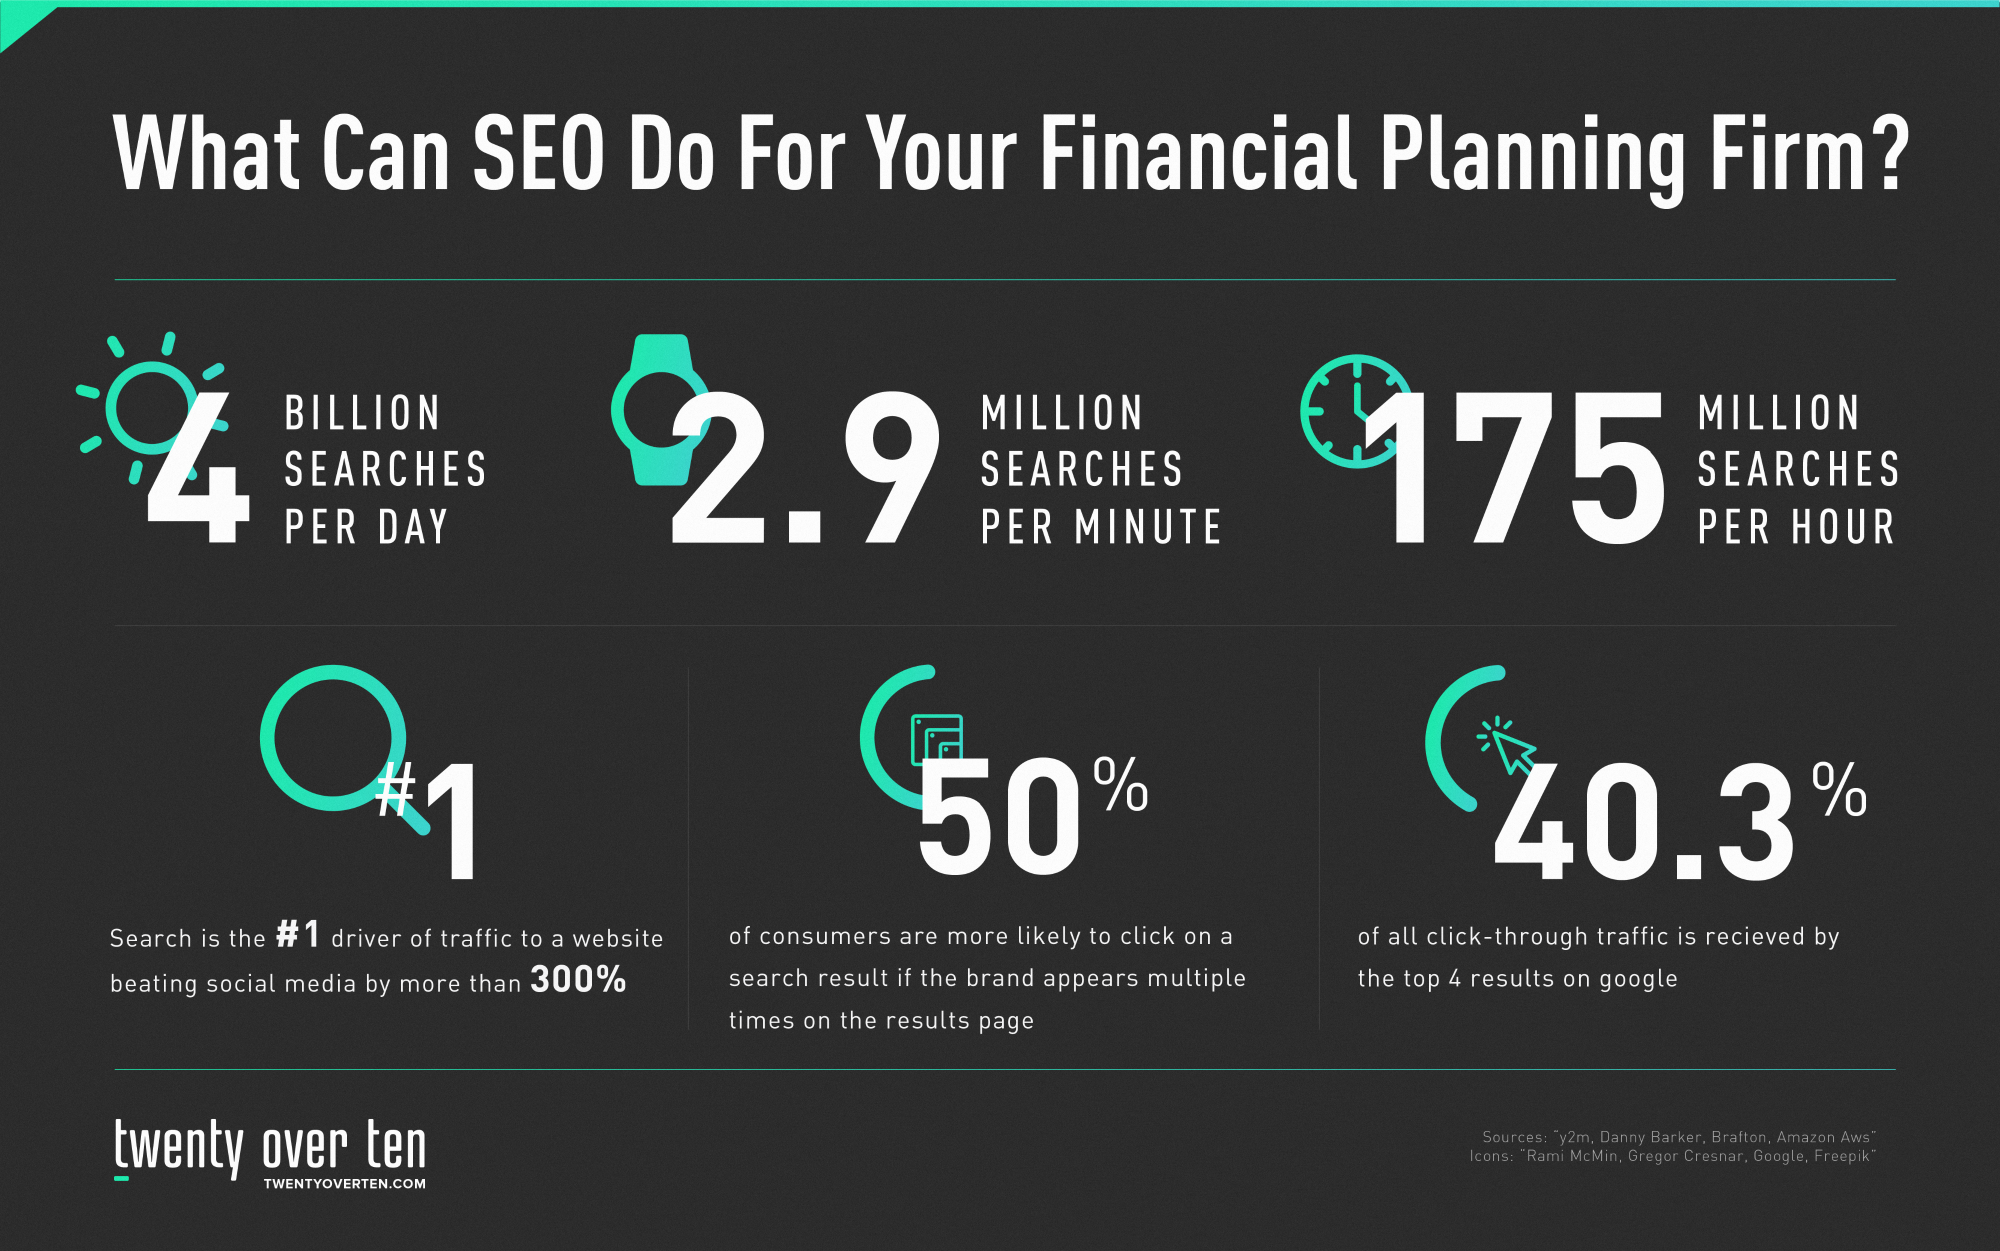 What SEO can do for your business - SEO infographic